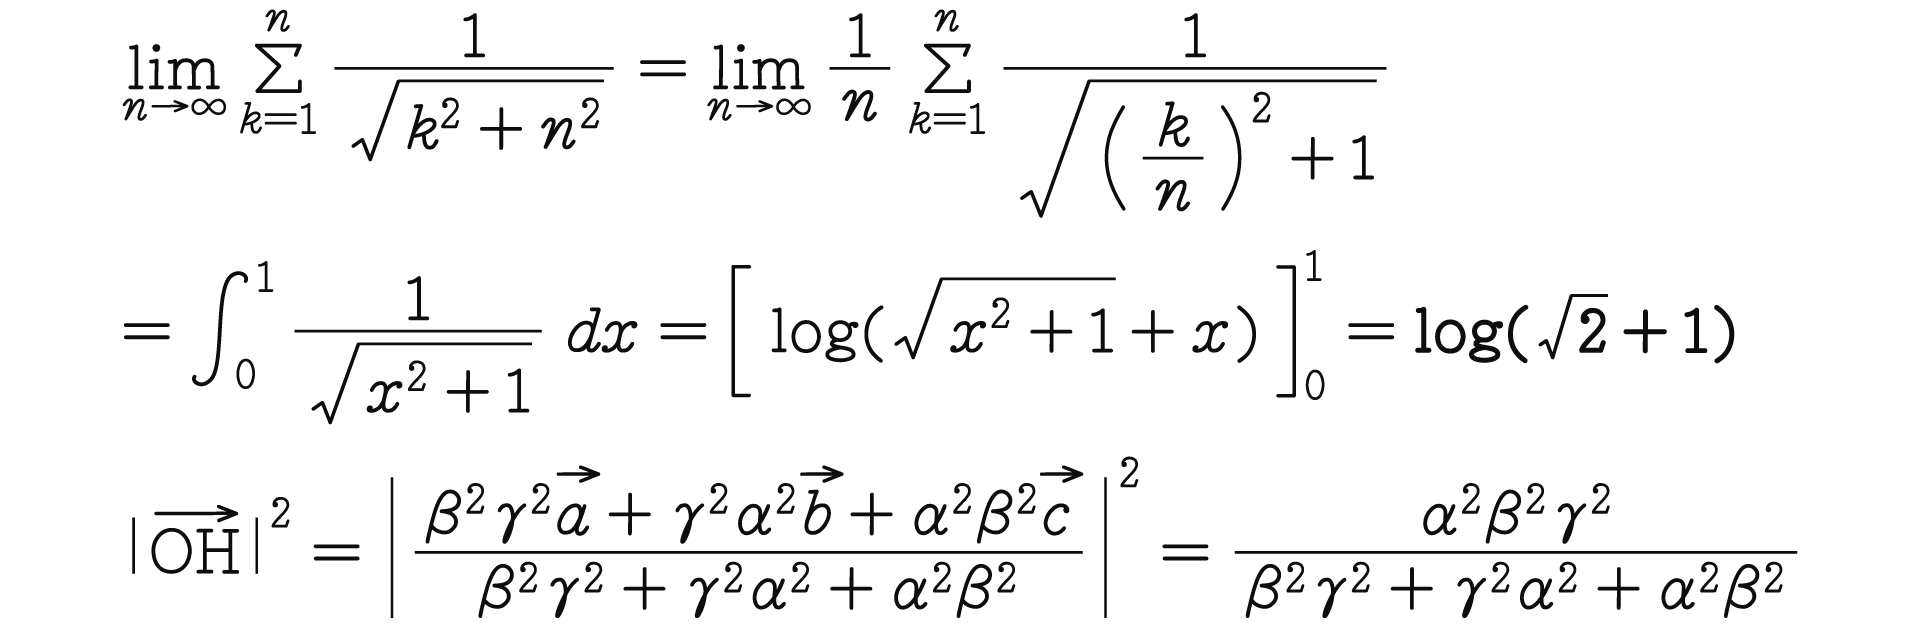 math-example.png